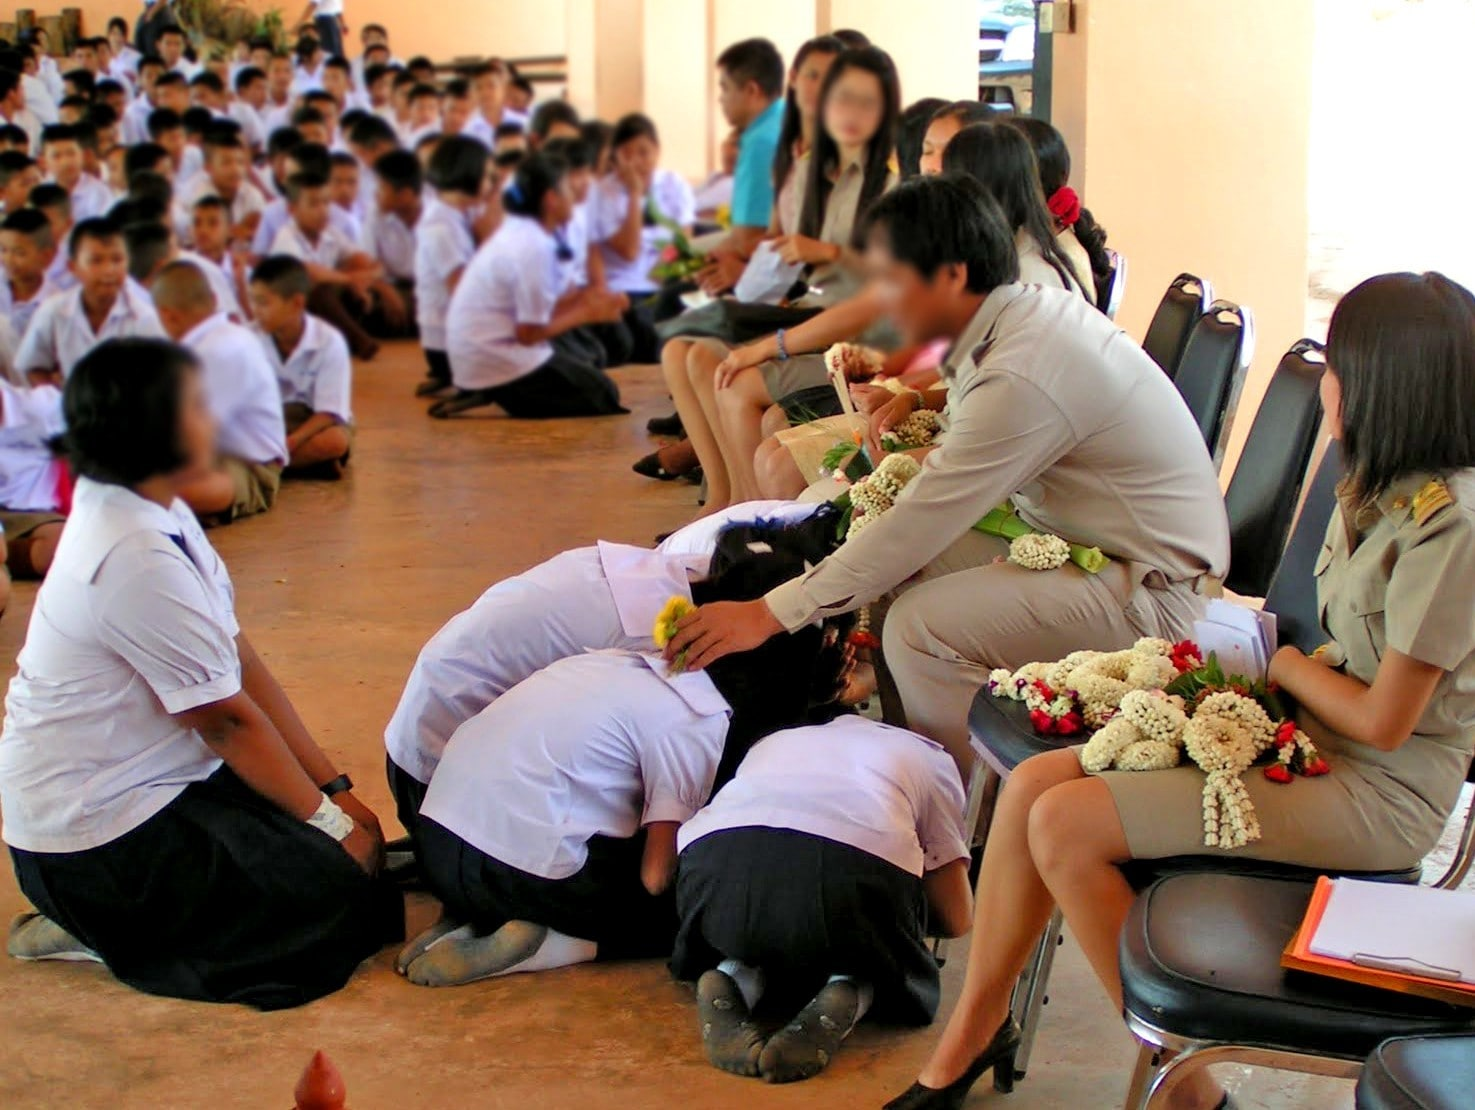 Wai Khru - setting a bad example for the future  Thailand's demand